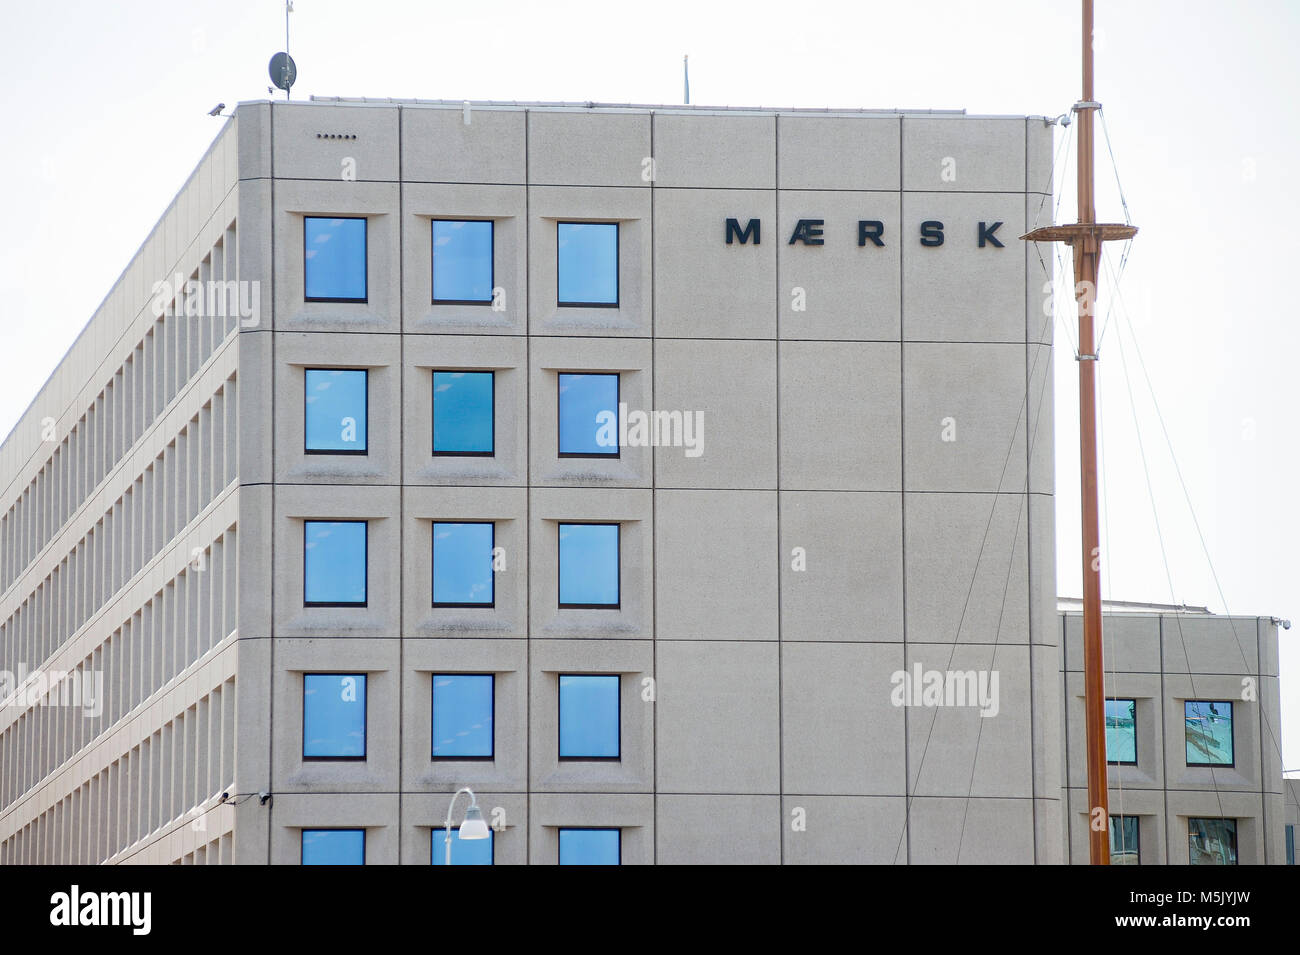 Headquaters of A.P. Moller–Maersk Group, Danish business conglomerate in transport, logistics and energy sector, one of the largest container ship ope Stock Photo